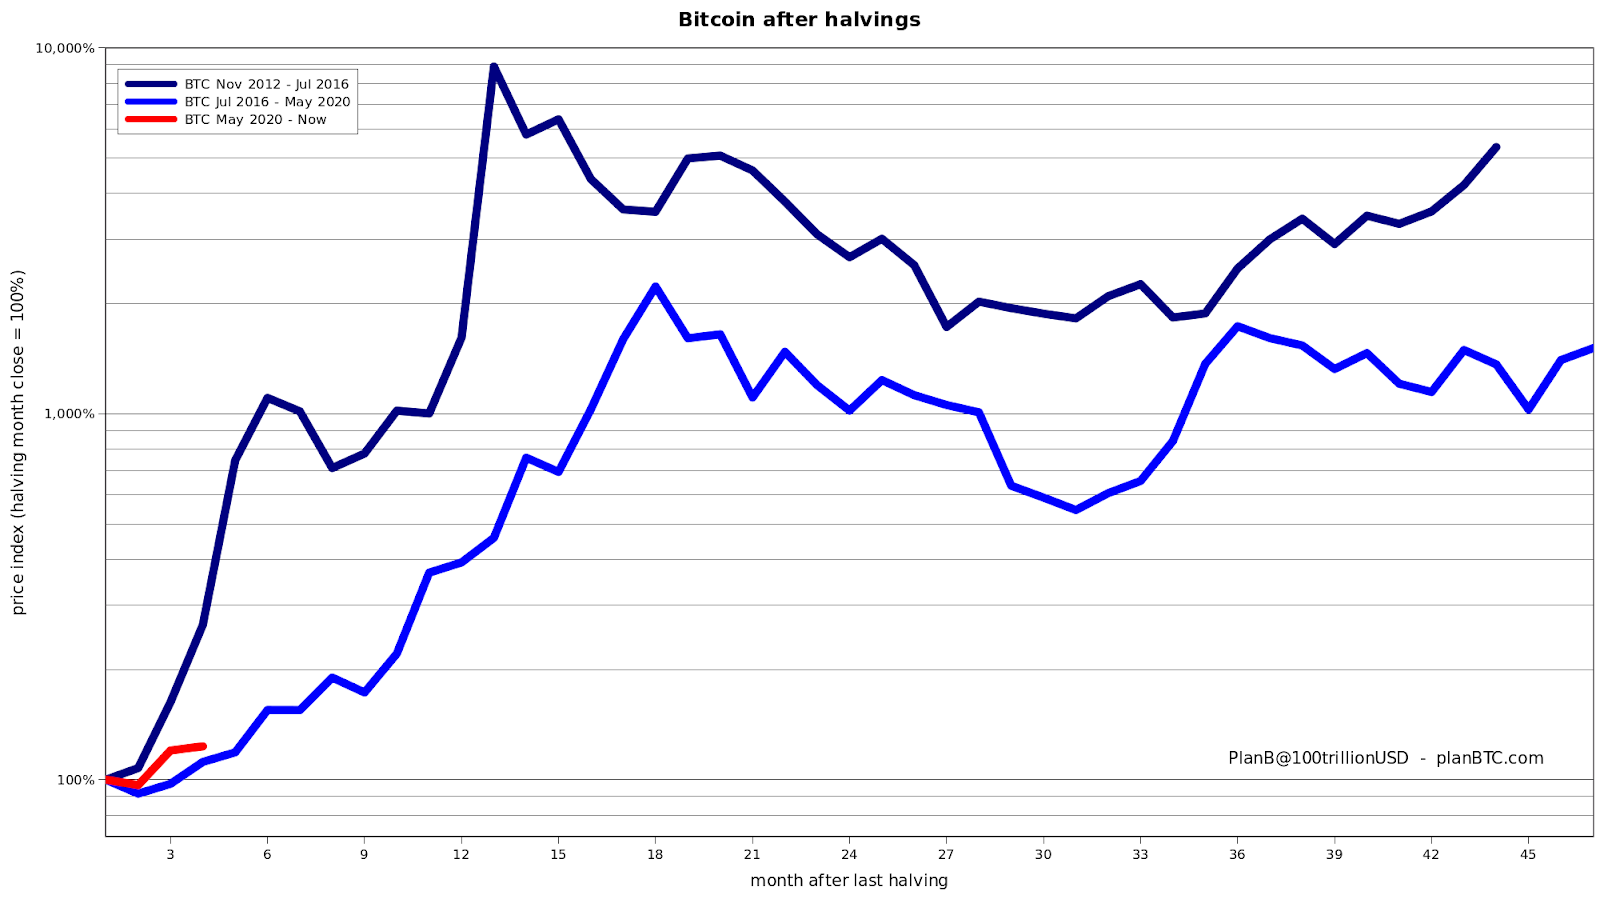 Bitcoin price post-halving comparison